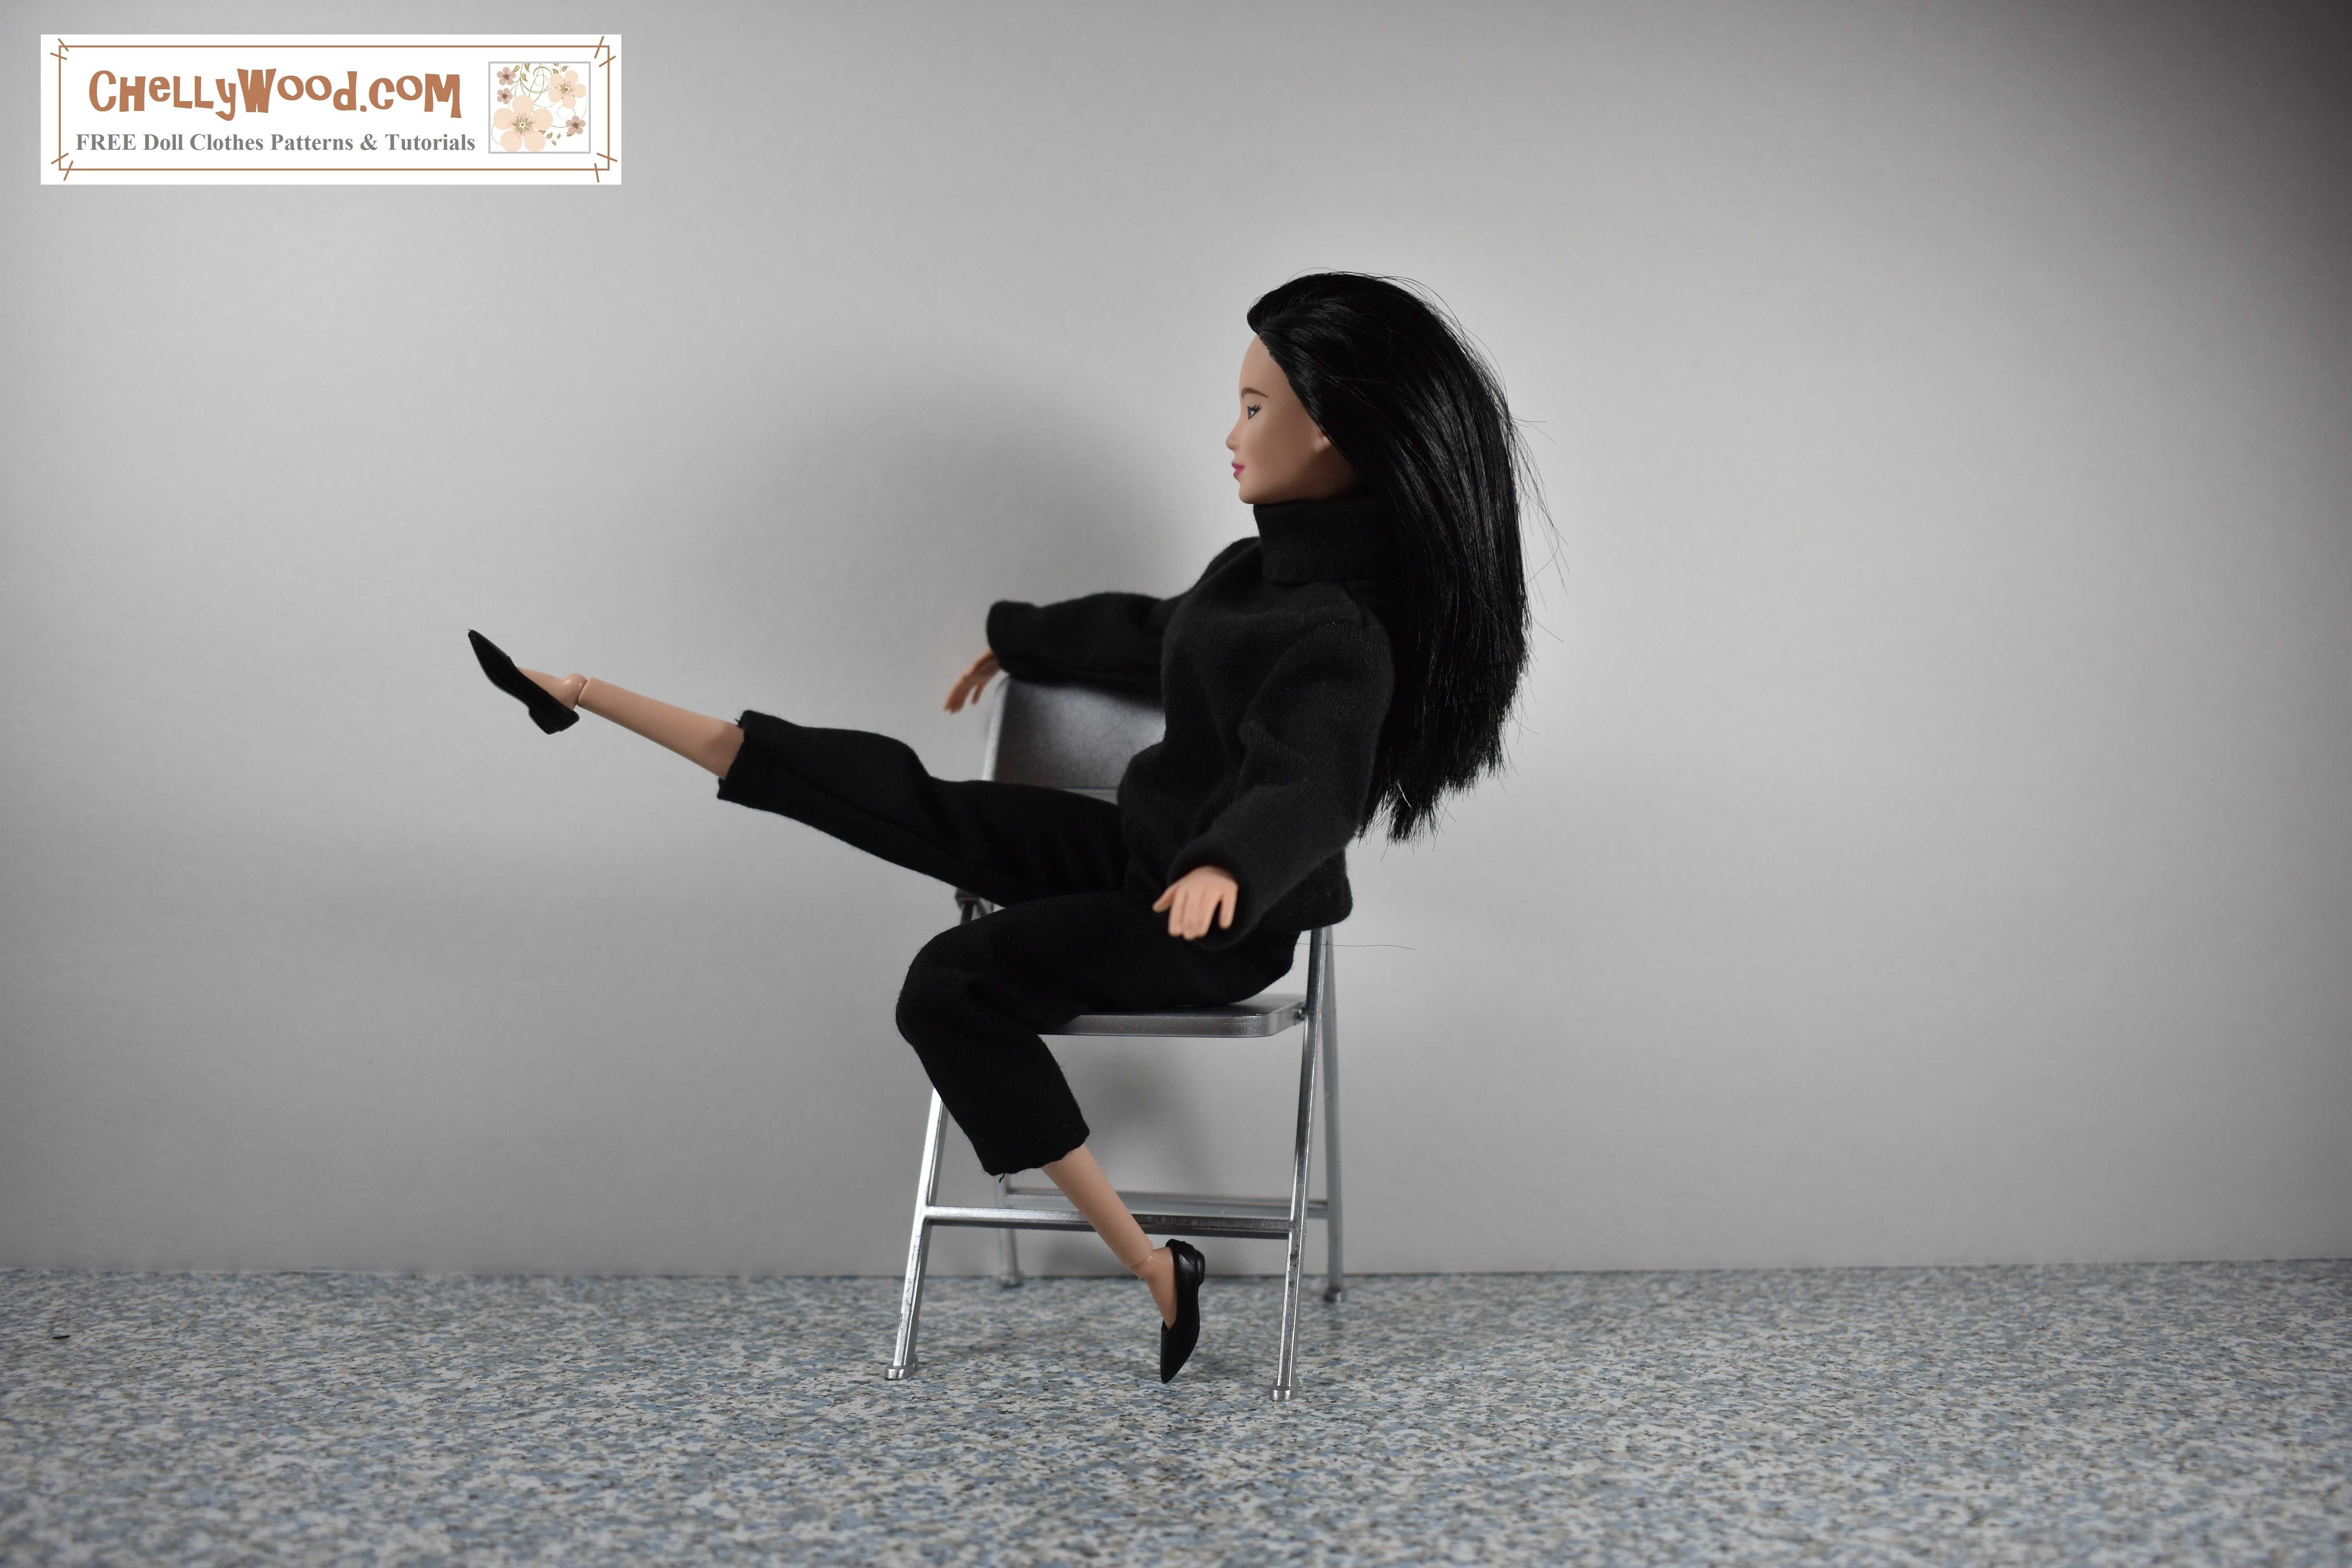 The image shows a Made-to-Move Barbie dressed like Audrey Hepburn from the early 1960's. She wears a black turtleneck with black capri pants and black plastic flats. She's seated on a tiny 1:6 scale folding chair. One arm is slung over the back of the chair, and the other arm is extended for balance. She is lifting one of her feet high into the air in front of her, while the other leg is bent with her toes just resting on a concrete floor. The wall behind her is white, creating a sharp contrast to the black clothing and silver chair. If you'd like to make this outfit, click on the link provided in the caption. You'll be taken to a page where you'll be able to download and print all the free PDF sewing patterns and watch all the free tutorial videos you'll need to make this outfit.